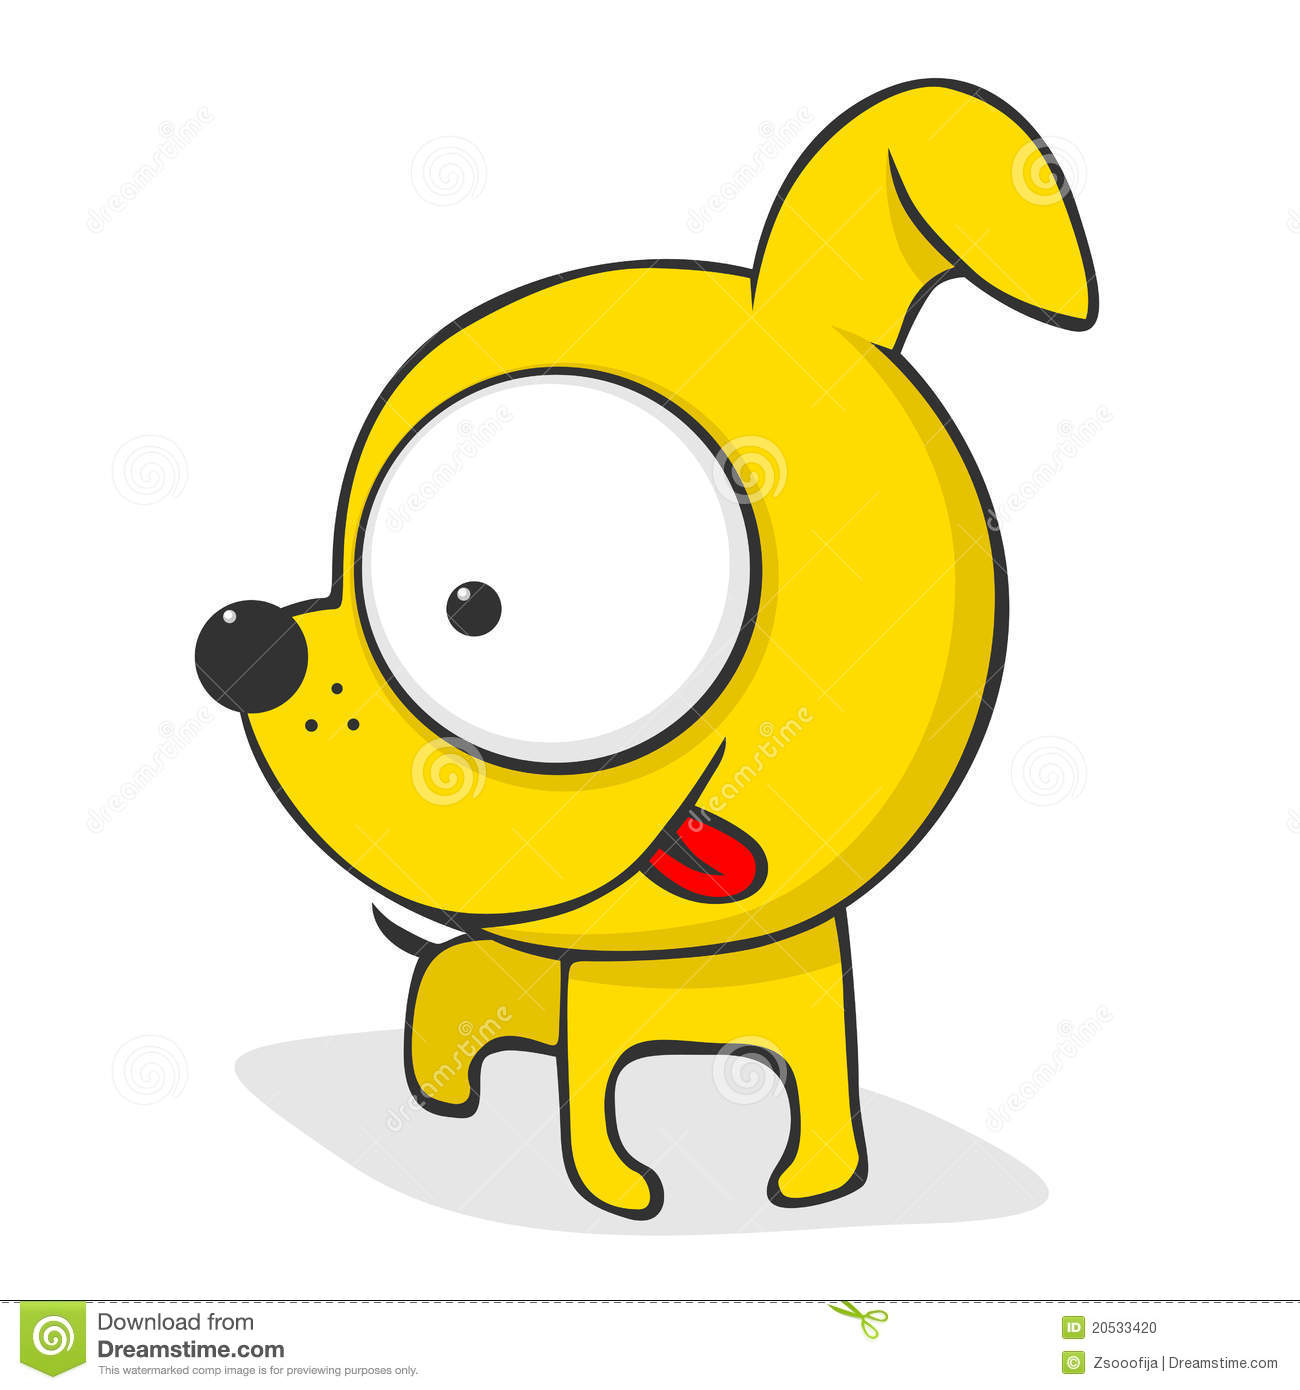 Simple Cute Dog Cartoon